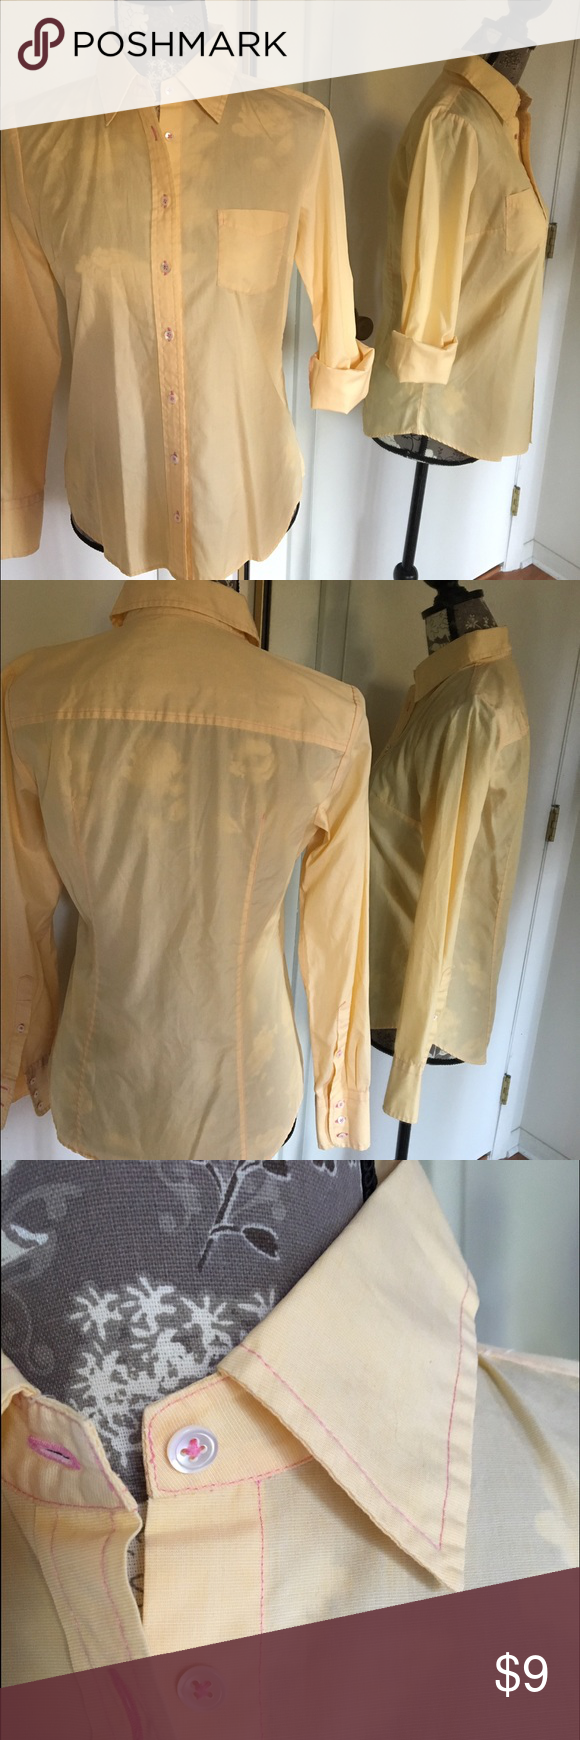 J Crew Light Yellow Button Down This button down is light and airy- perfect for layering! Canary yellow with pink stitch work. True to size. Like new condition. 🌾 Tops Button Down Shirts